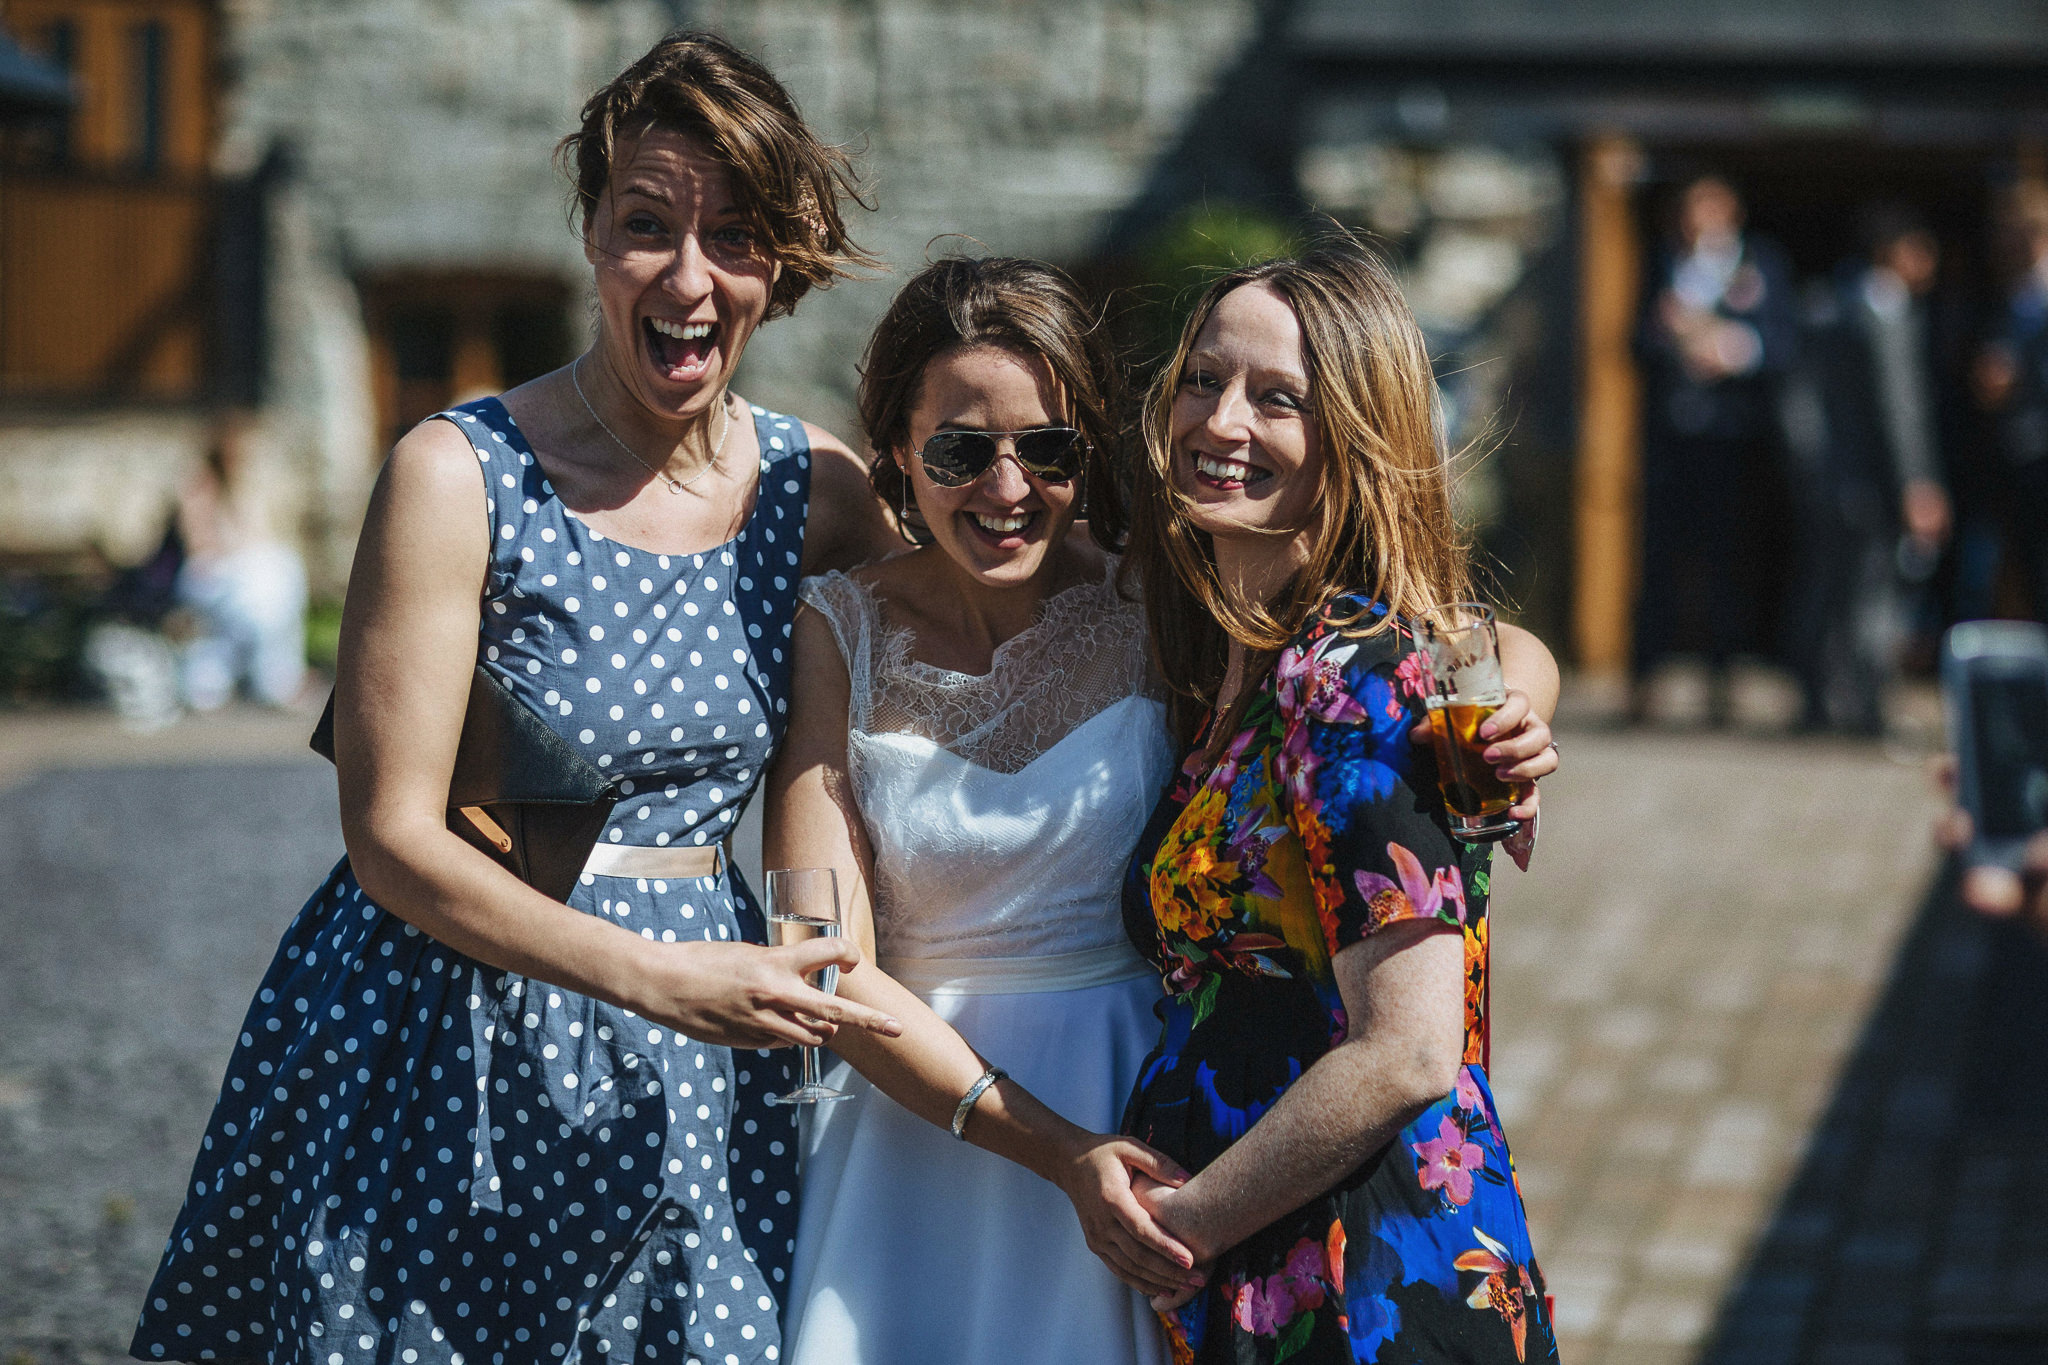 plas-isaf-corwen-north-wales-farm-wedding-photography-photographer-90063